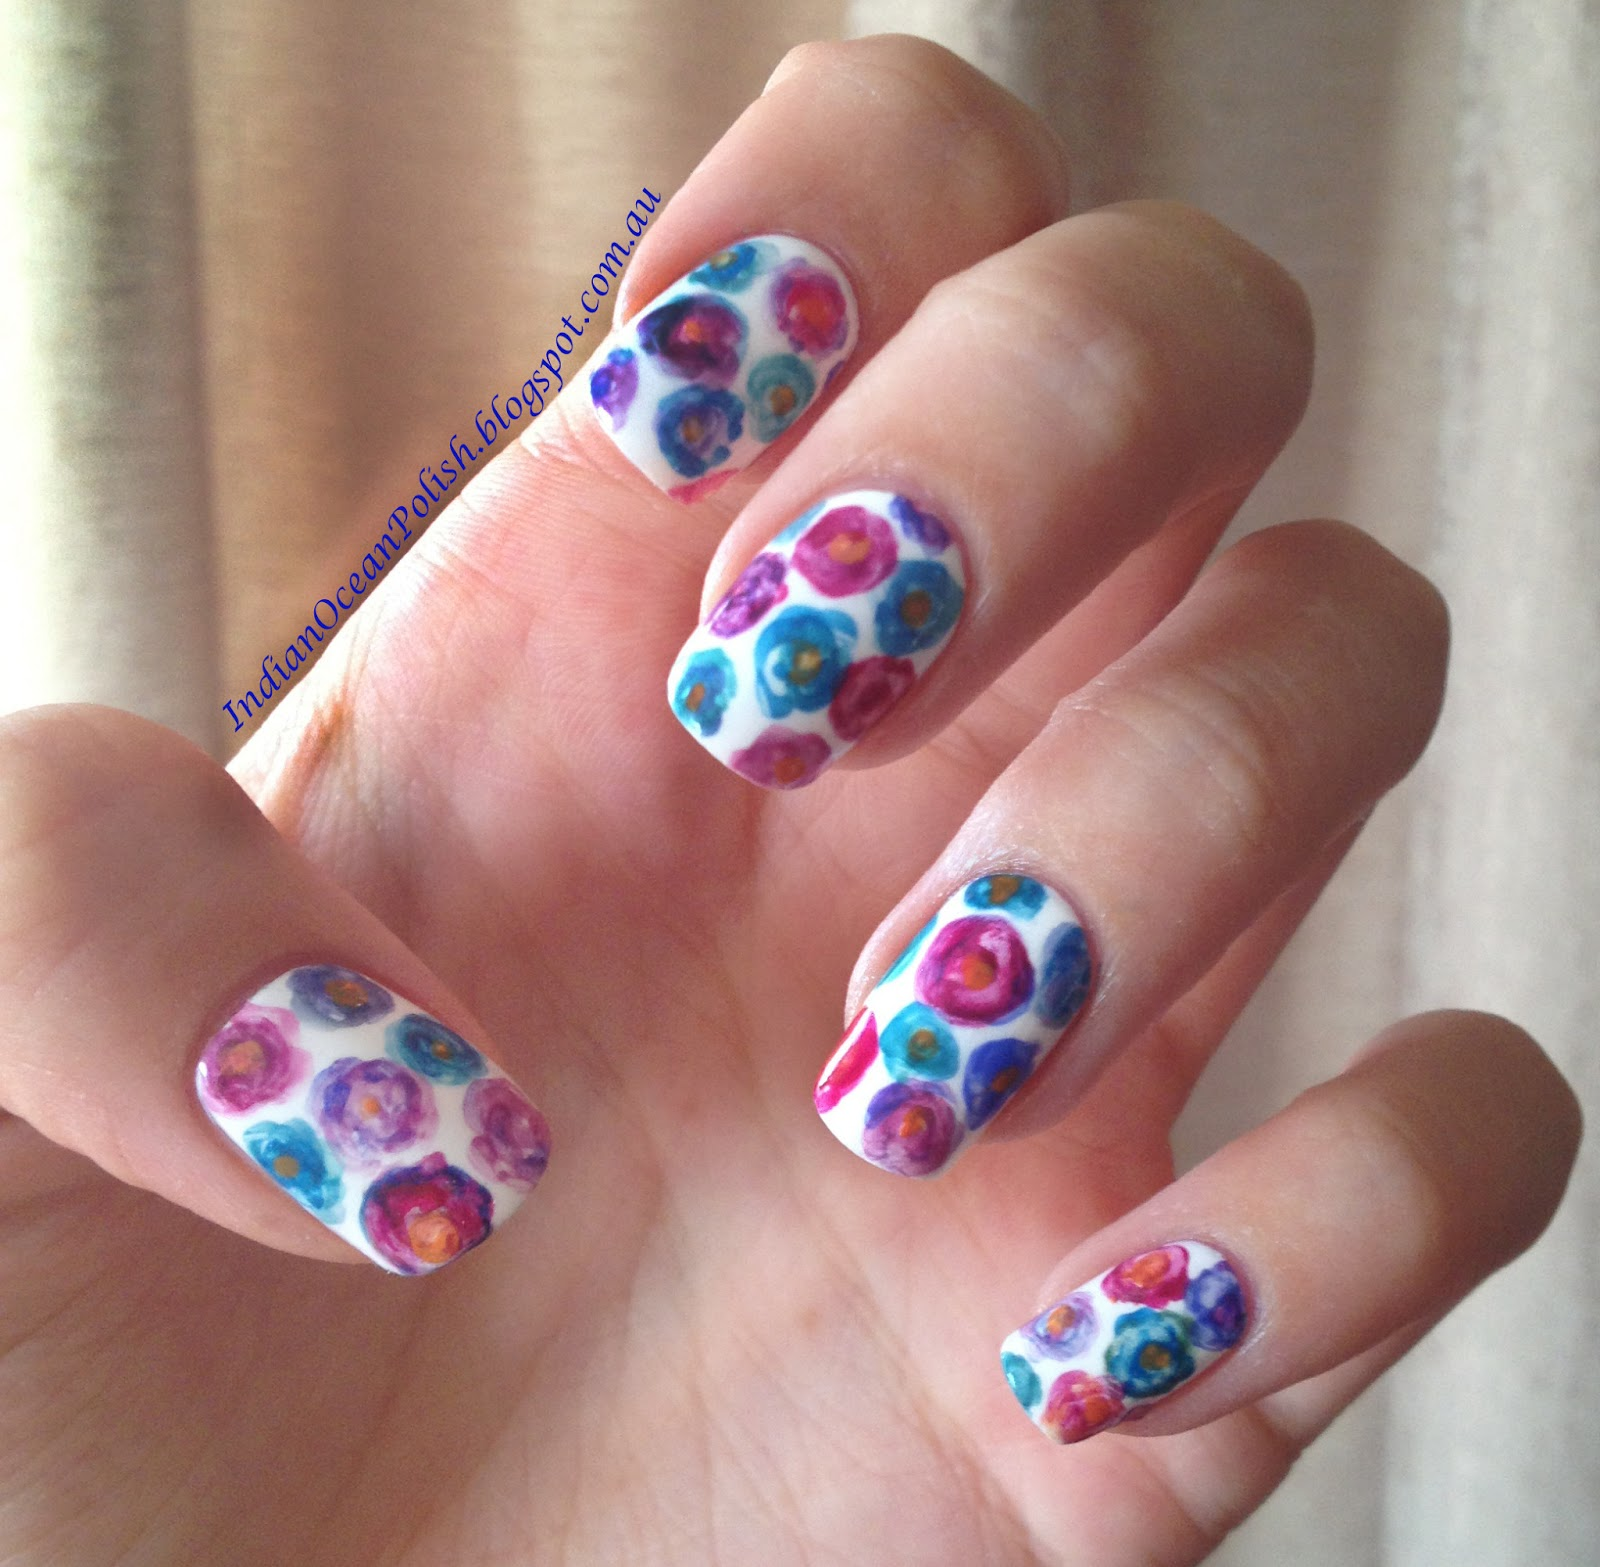 Indian Ocean Polish: Simple Watercolour Flower Nail Art